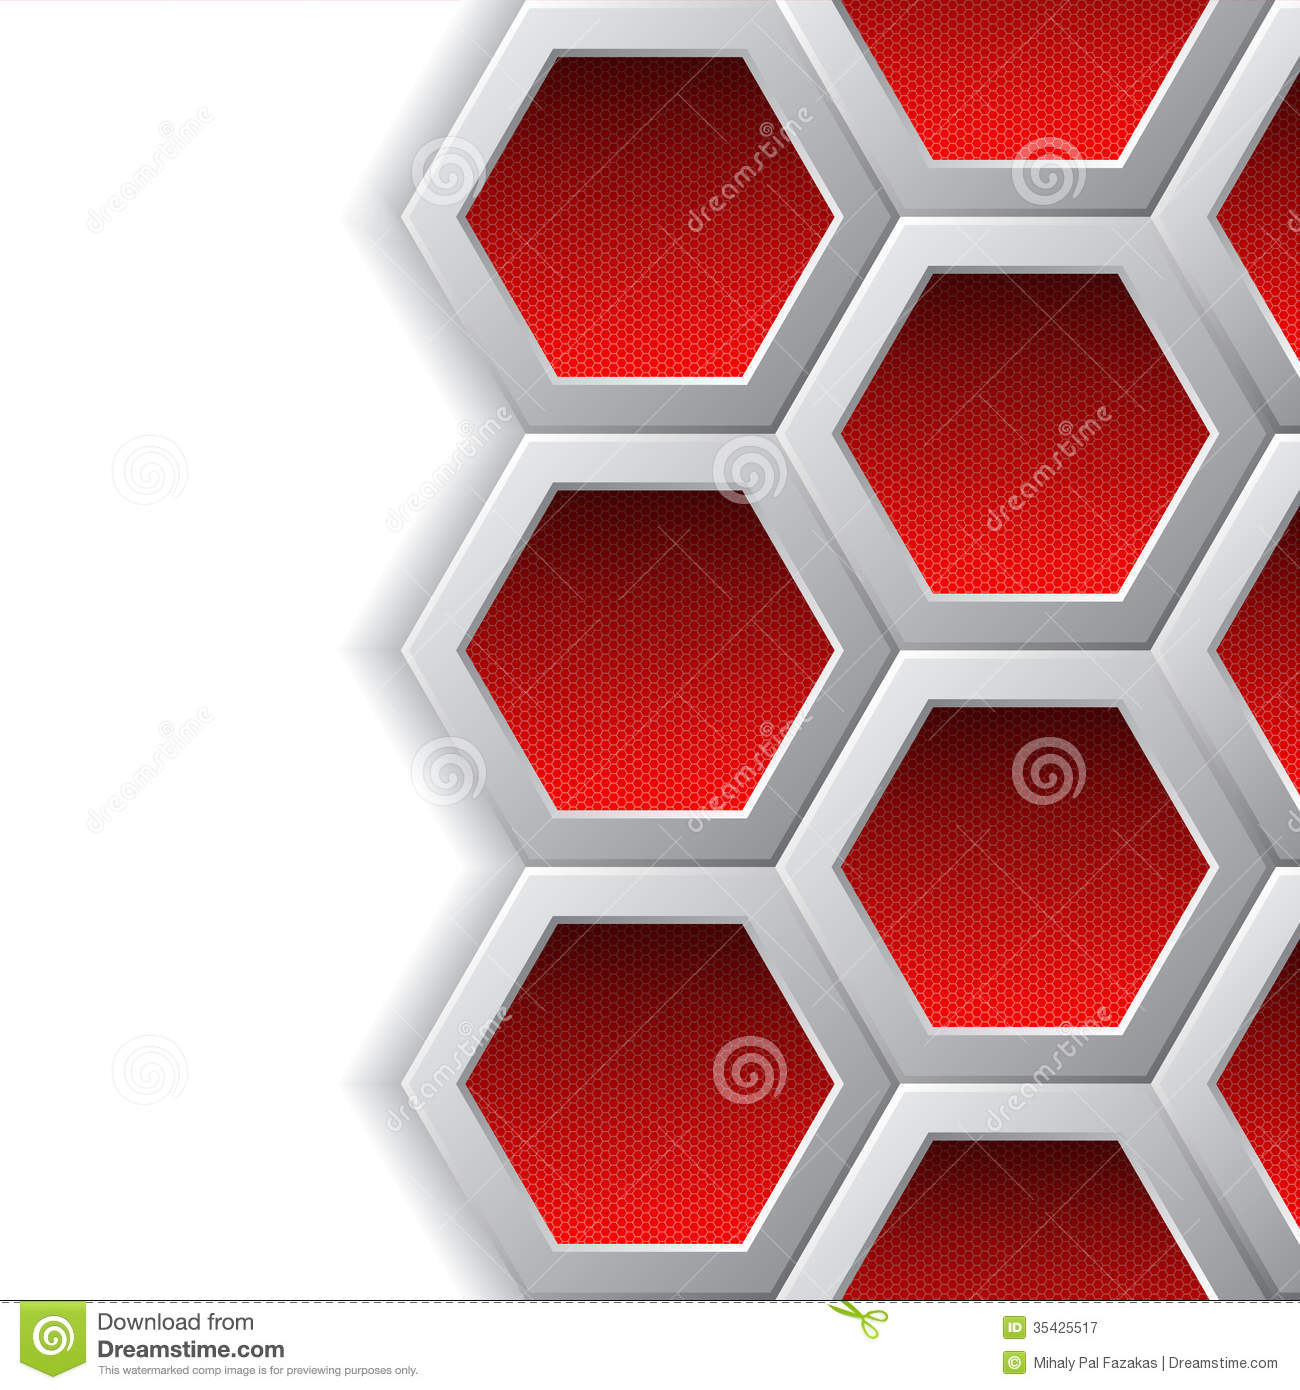 Red hexagons brochure background royalty free stock for Background for brochure design